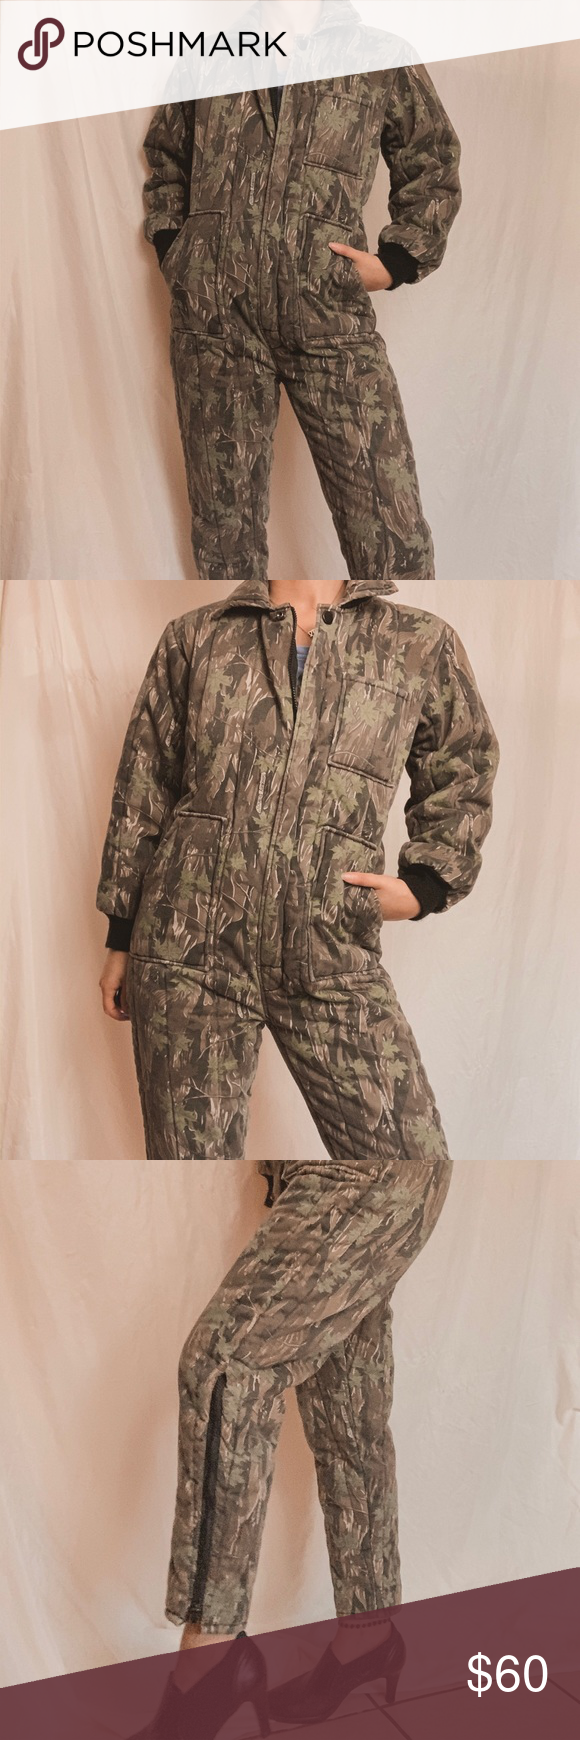 ROTHCO branch camo utility insulated jumpsuit ROTHCO Smokey branch camo utility …